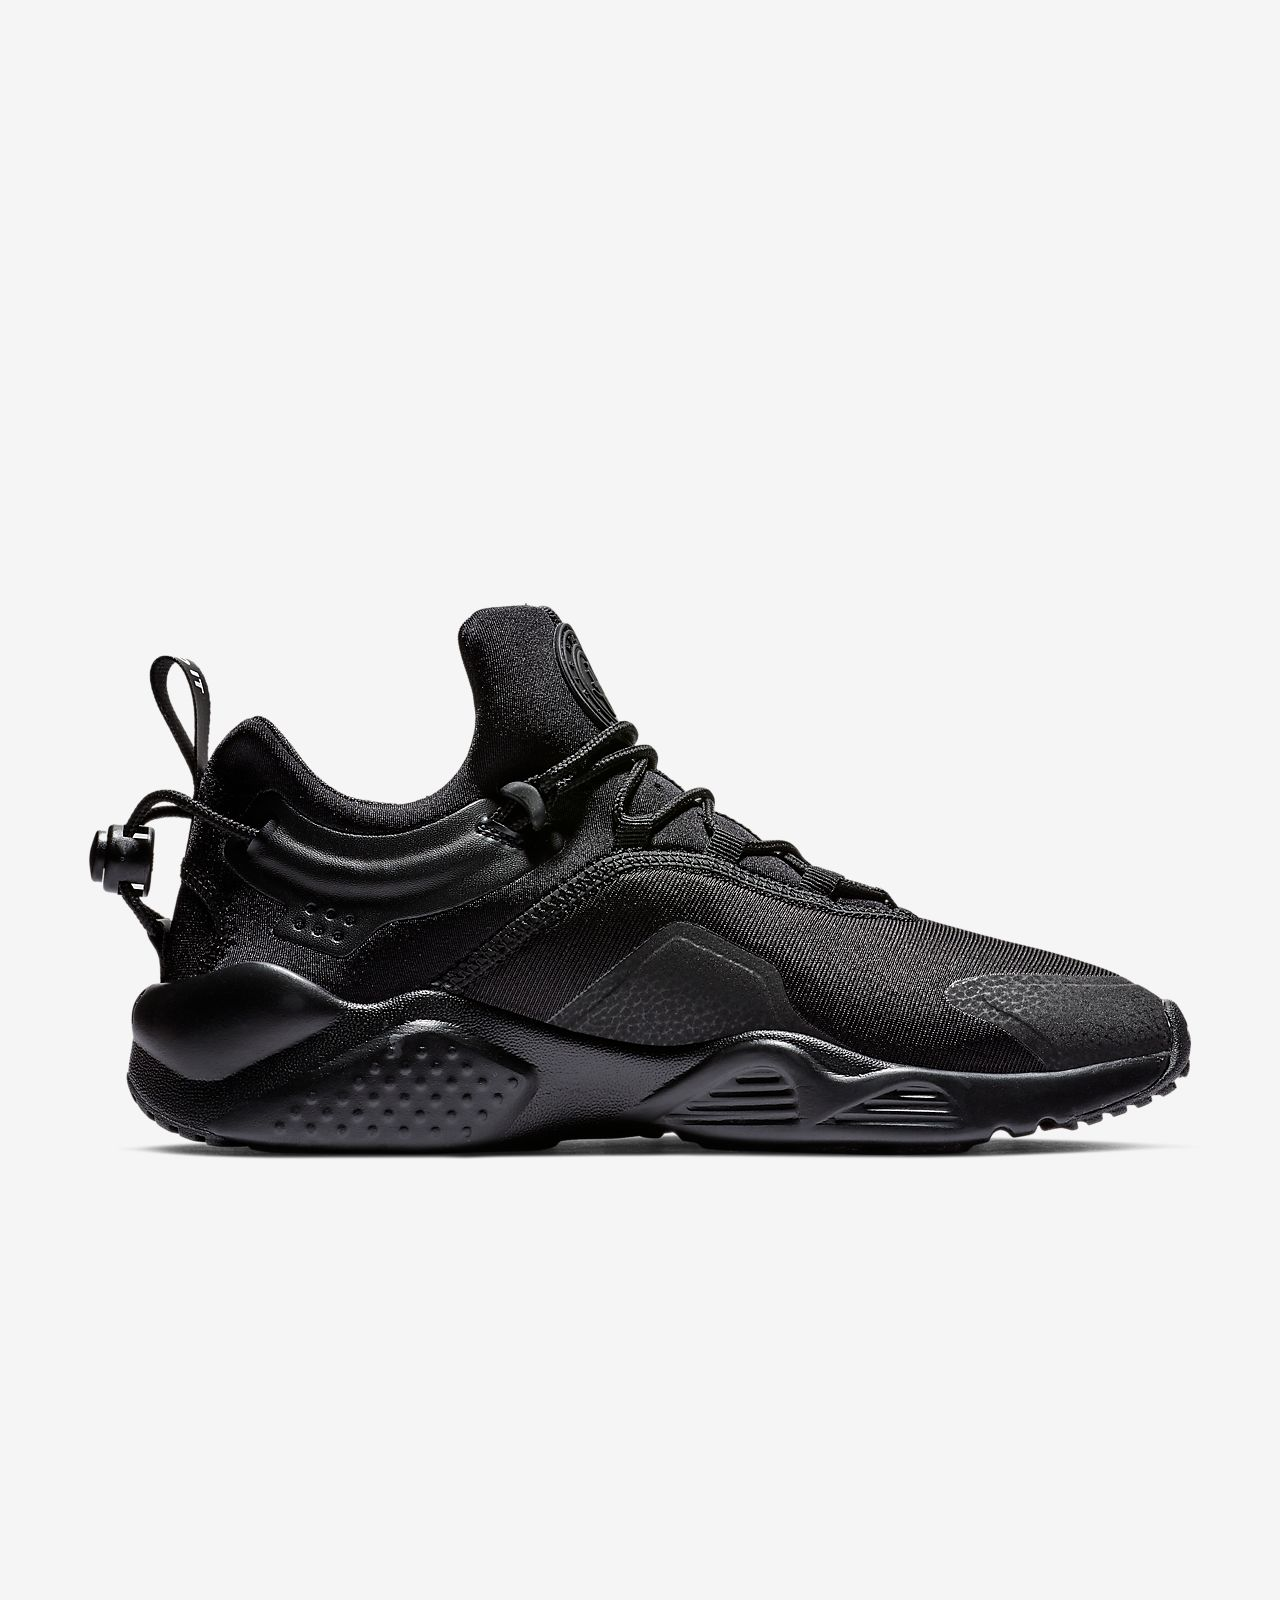 outlet store 9e722 438d4 ... Nike Air Huarache City Move Women s Shoe